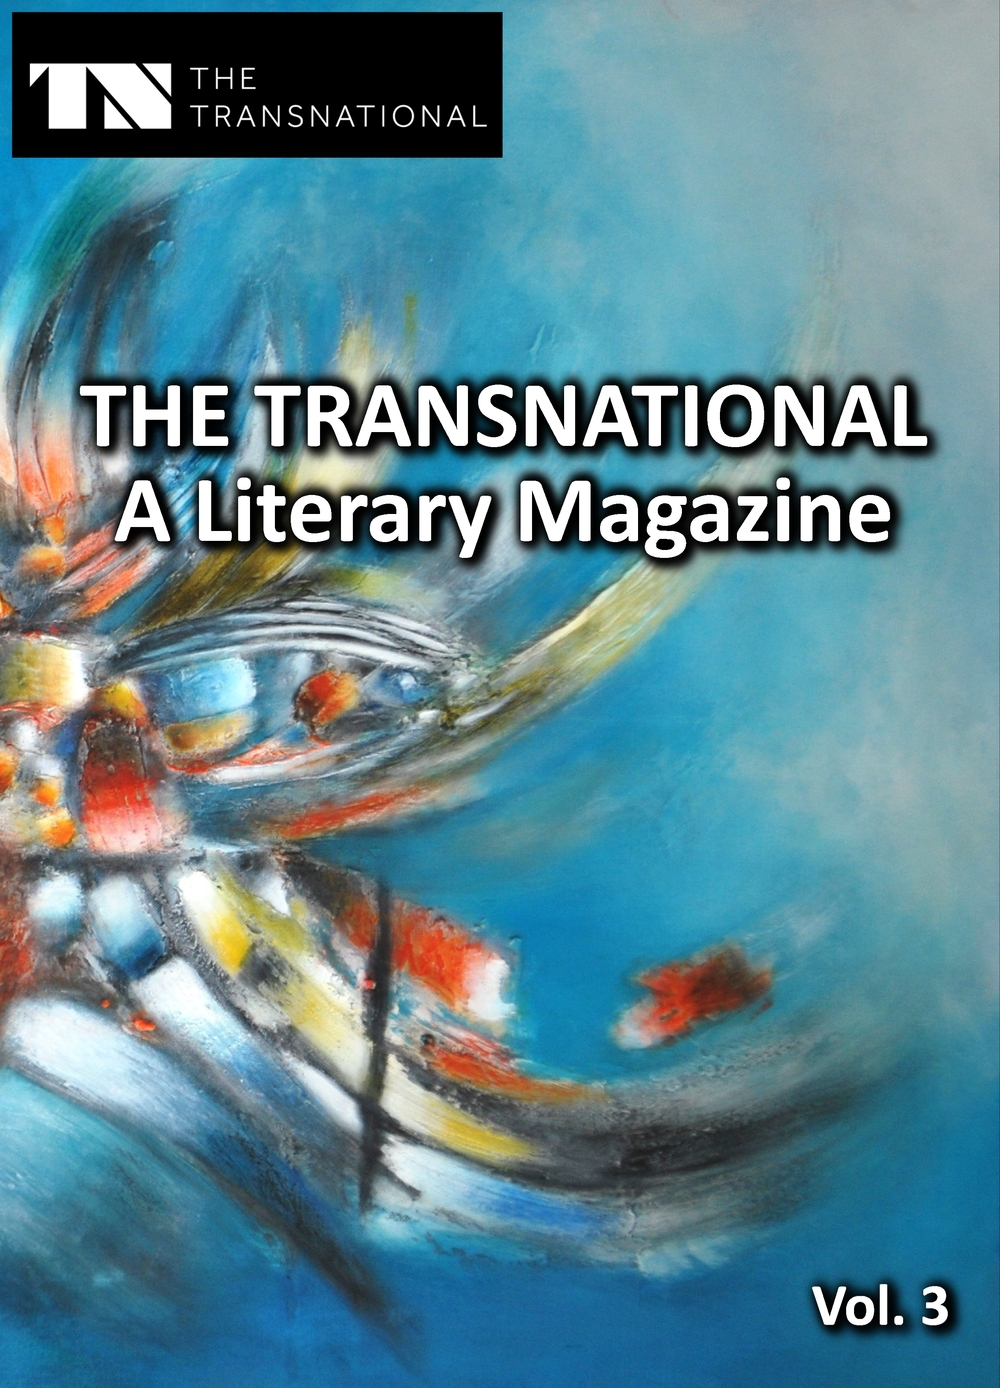 the_transnational_vol_3_isbn_vorne.jpg